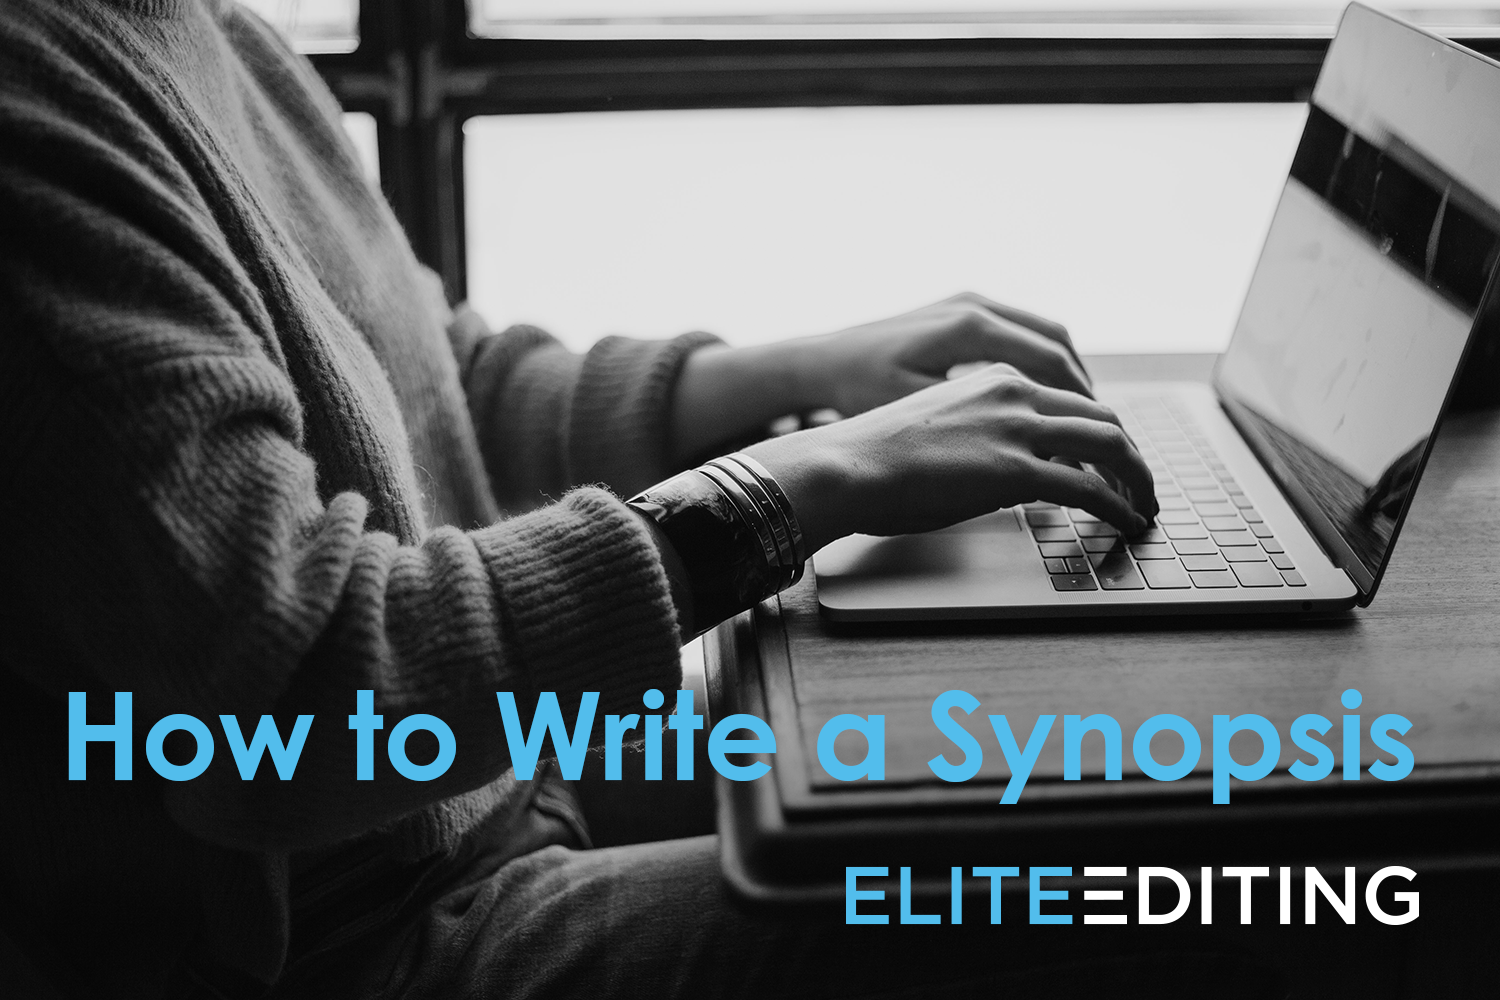 how to write a synopsis